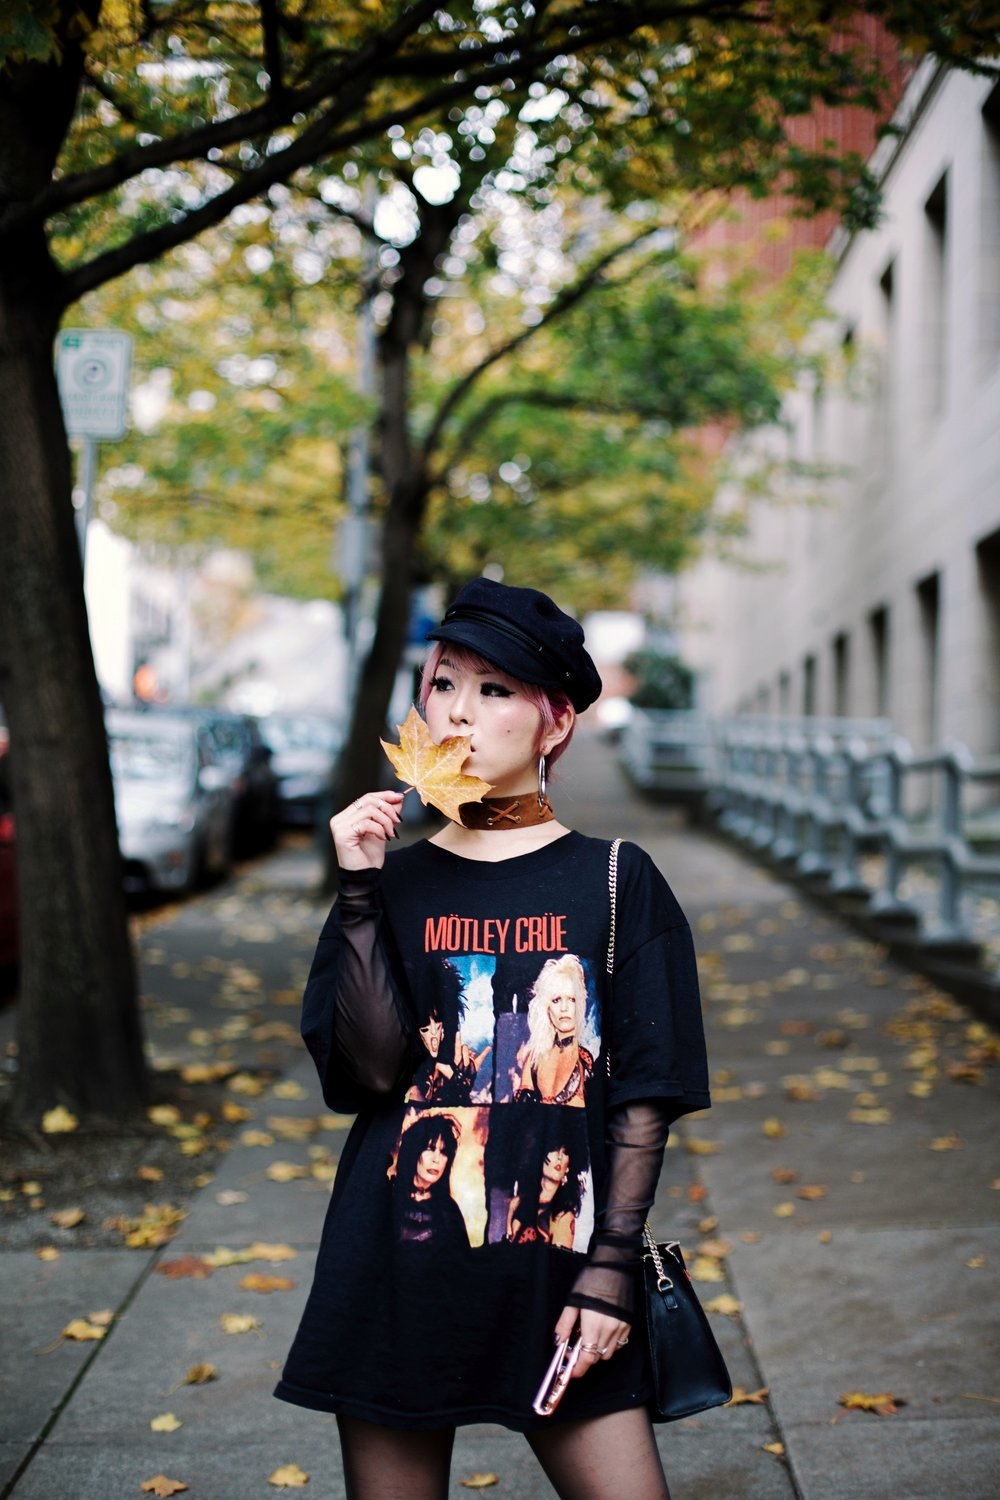 Isabel Marant Hat-Forever 21 hoop earrings-Free People Double Crossed Suede Choker-Vintage Rock T-shirt-Zara sheer top & EMBROIDERED CLUTCH-Aika's love Closet-Seattle Fashion Blogger-Japanese-Pink hair-Colored Hair